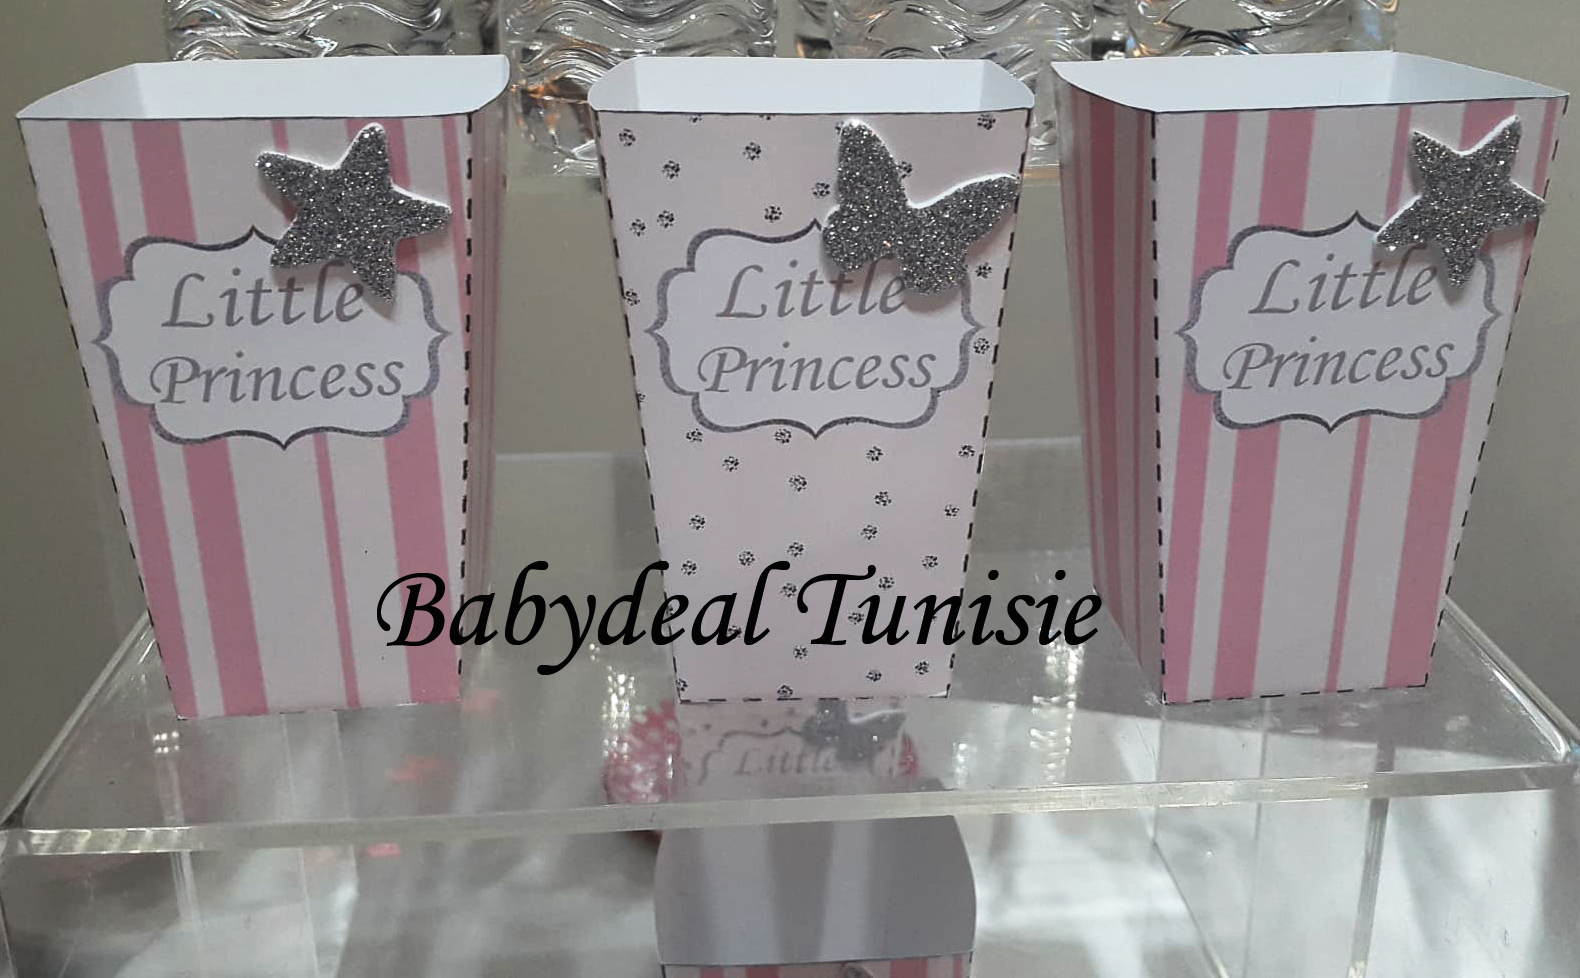 box-popcorn-kit-princess-babydeal-tunisie